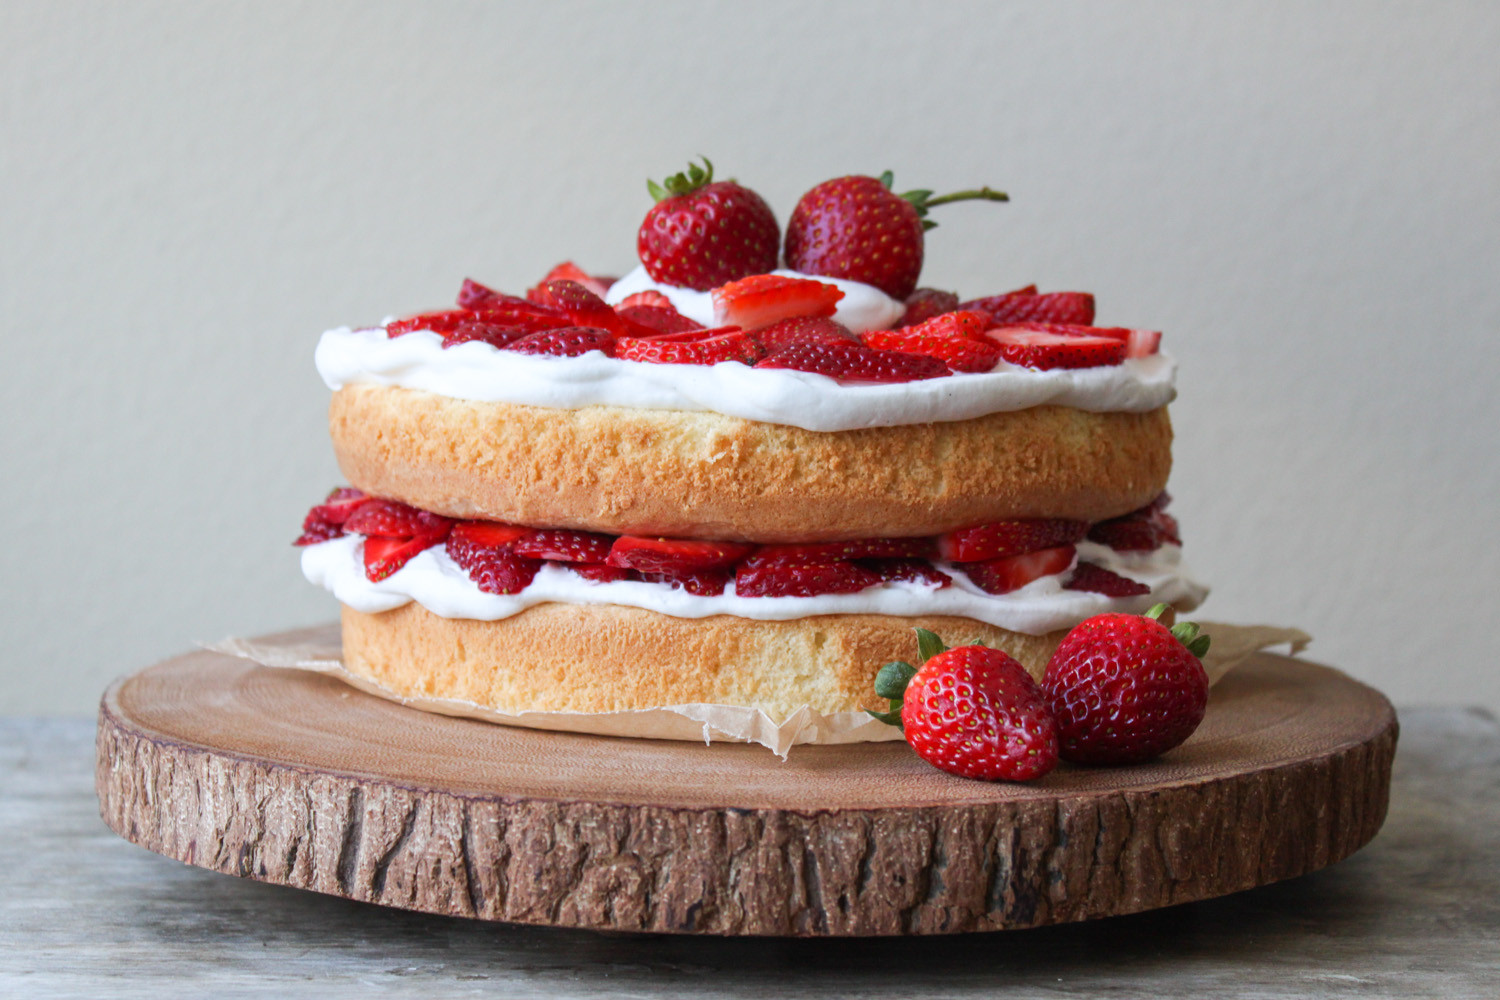 Layered Birthday Cake Recipes  Strawberry Layer Cake The Little Epicurean